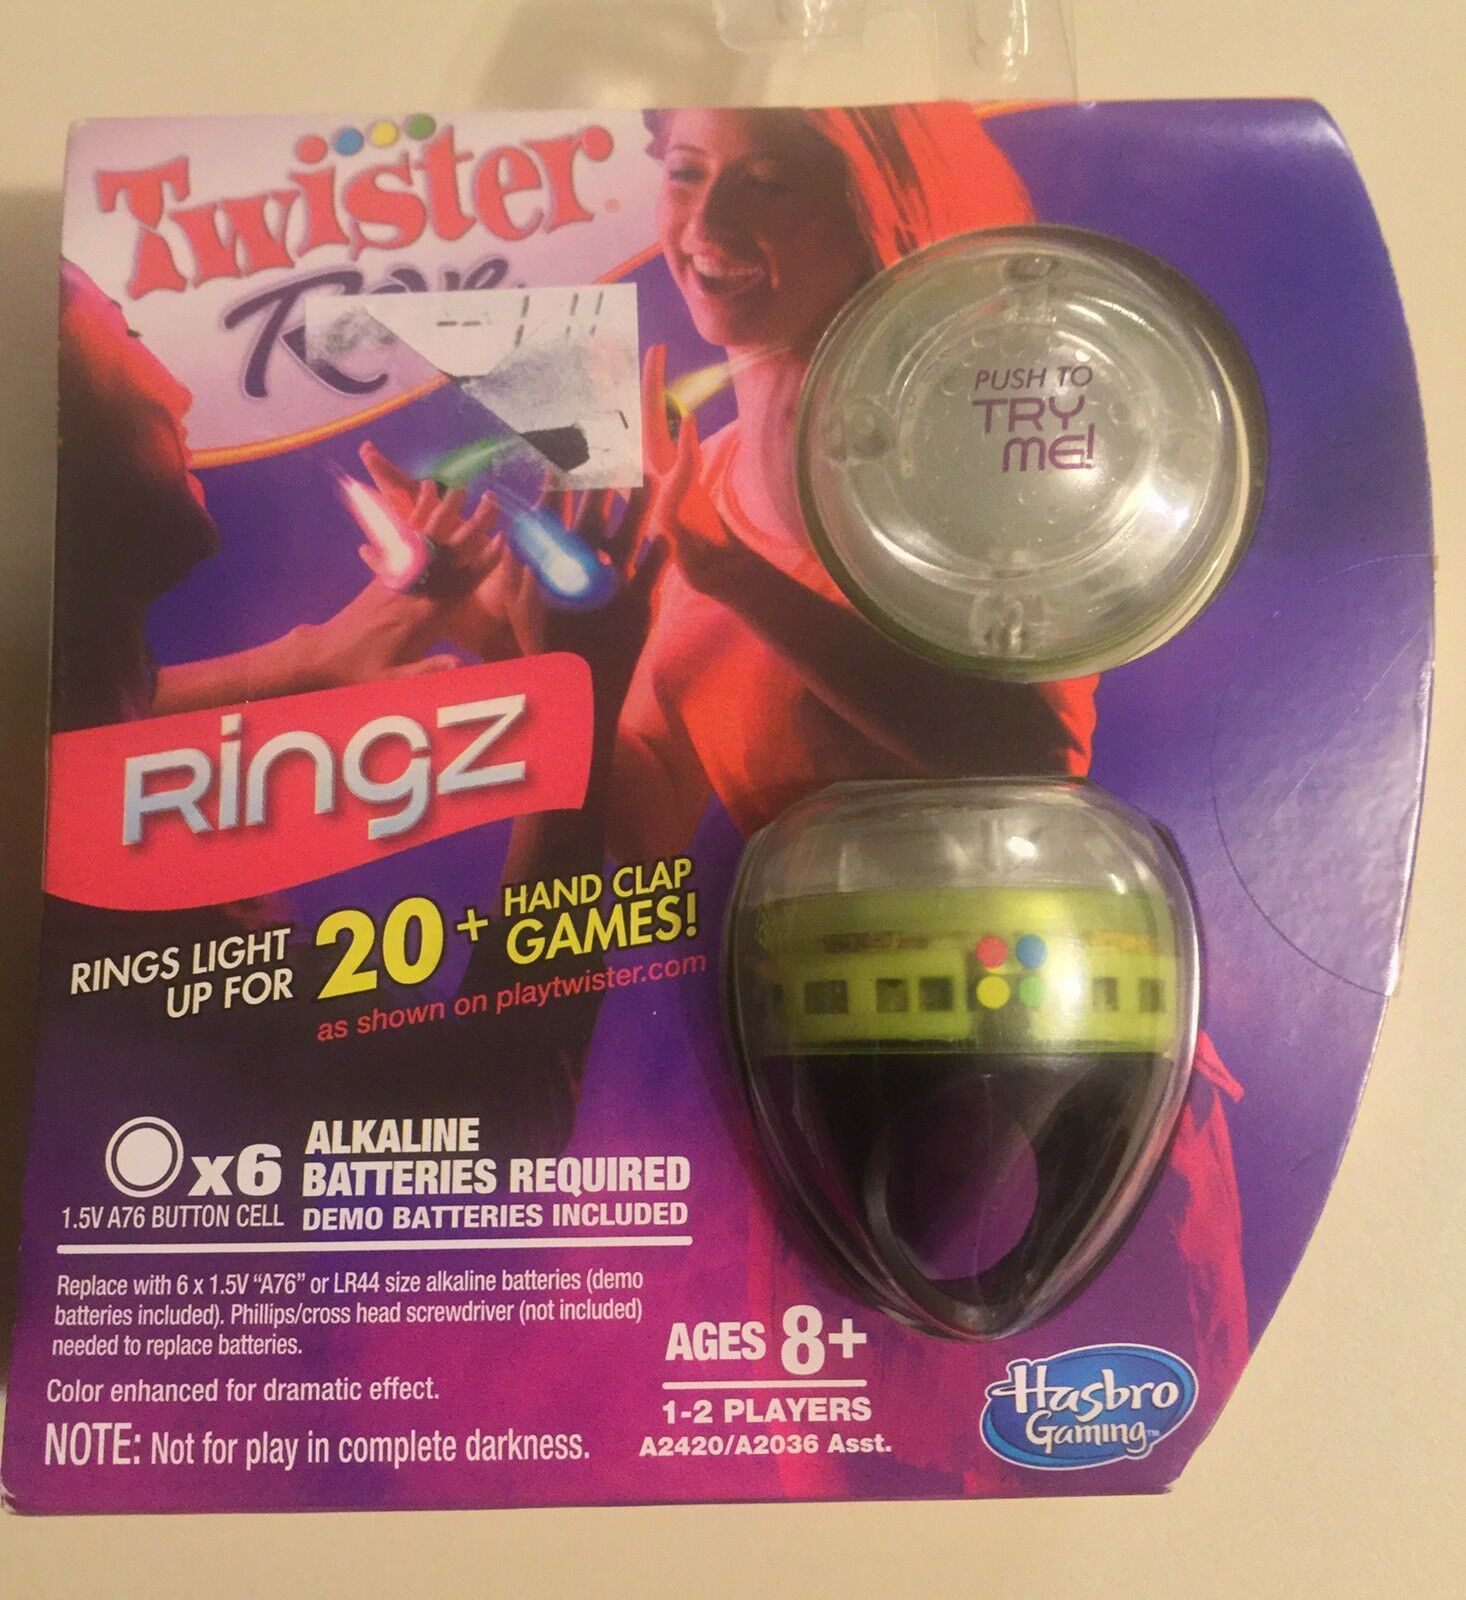 Twister Rave Ringz, Hand Clap Games, Green, Ages 8+, 1-2 Player, Hasbro, Rings